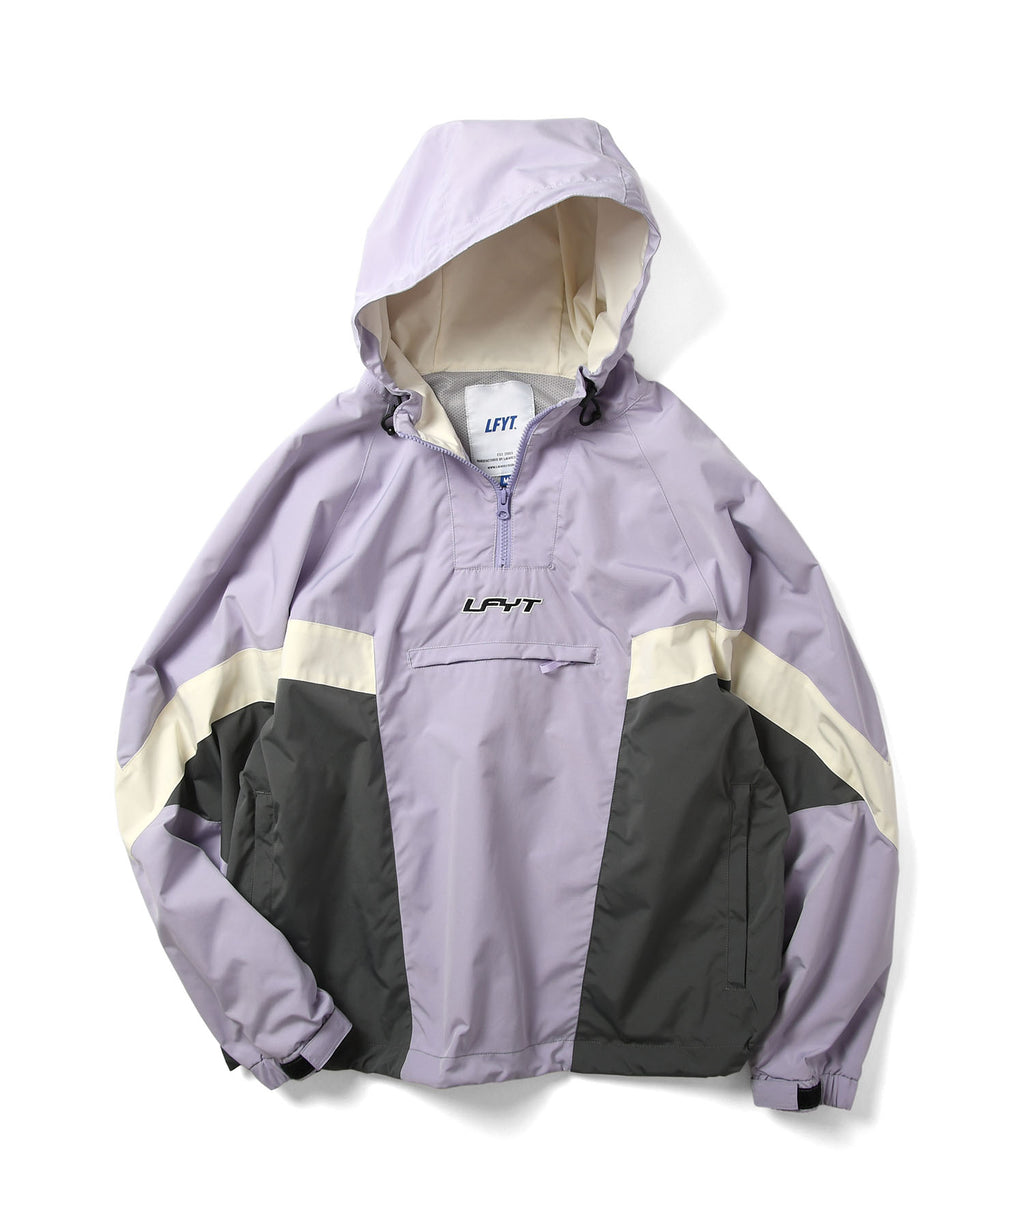 LFYT SPORTS ANORAK TRACK JACKET LS211002 LIGHT PURPLE